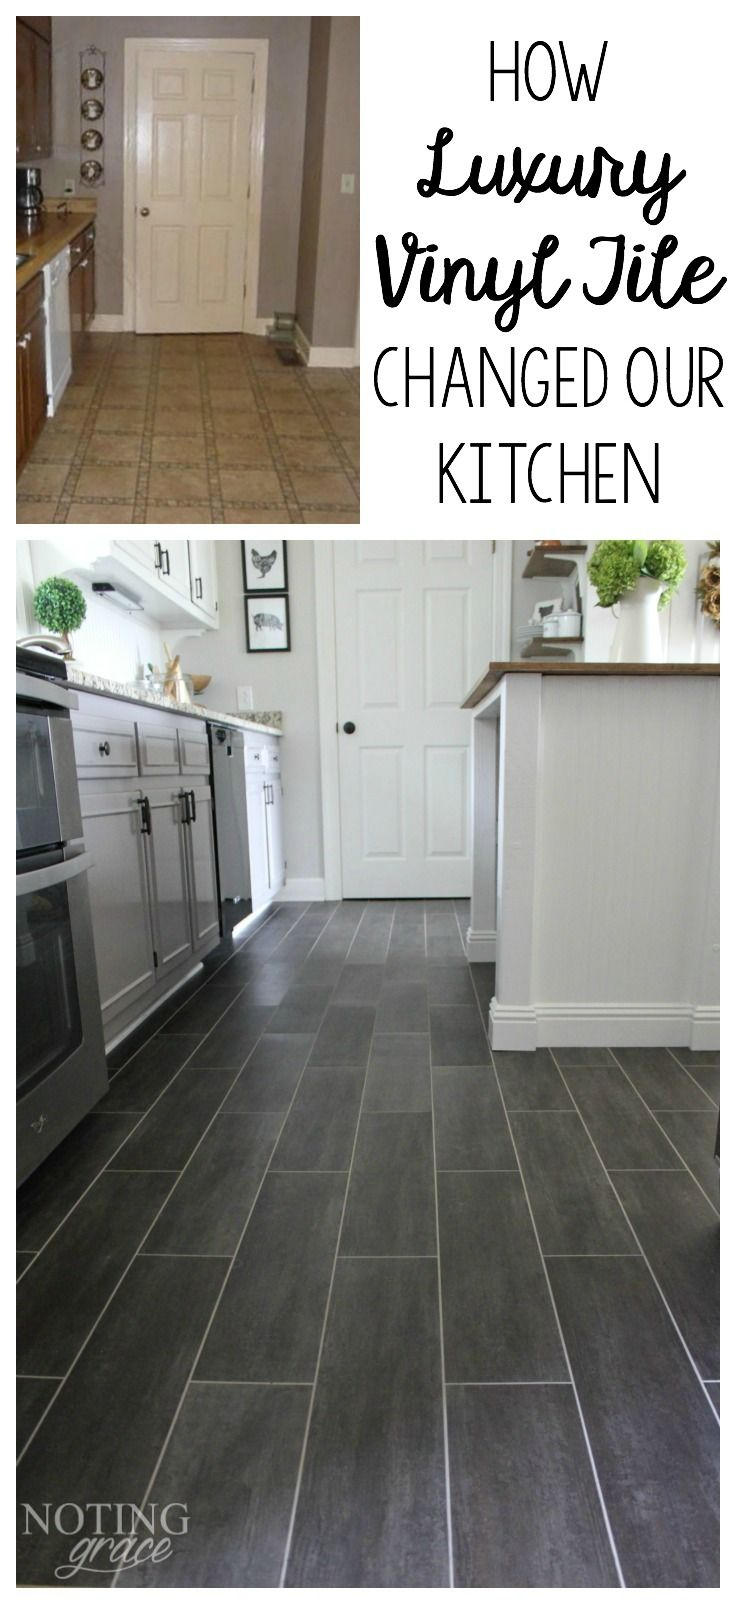 Vinyl Kitchen Floor Ideas